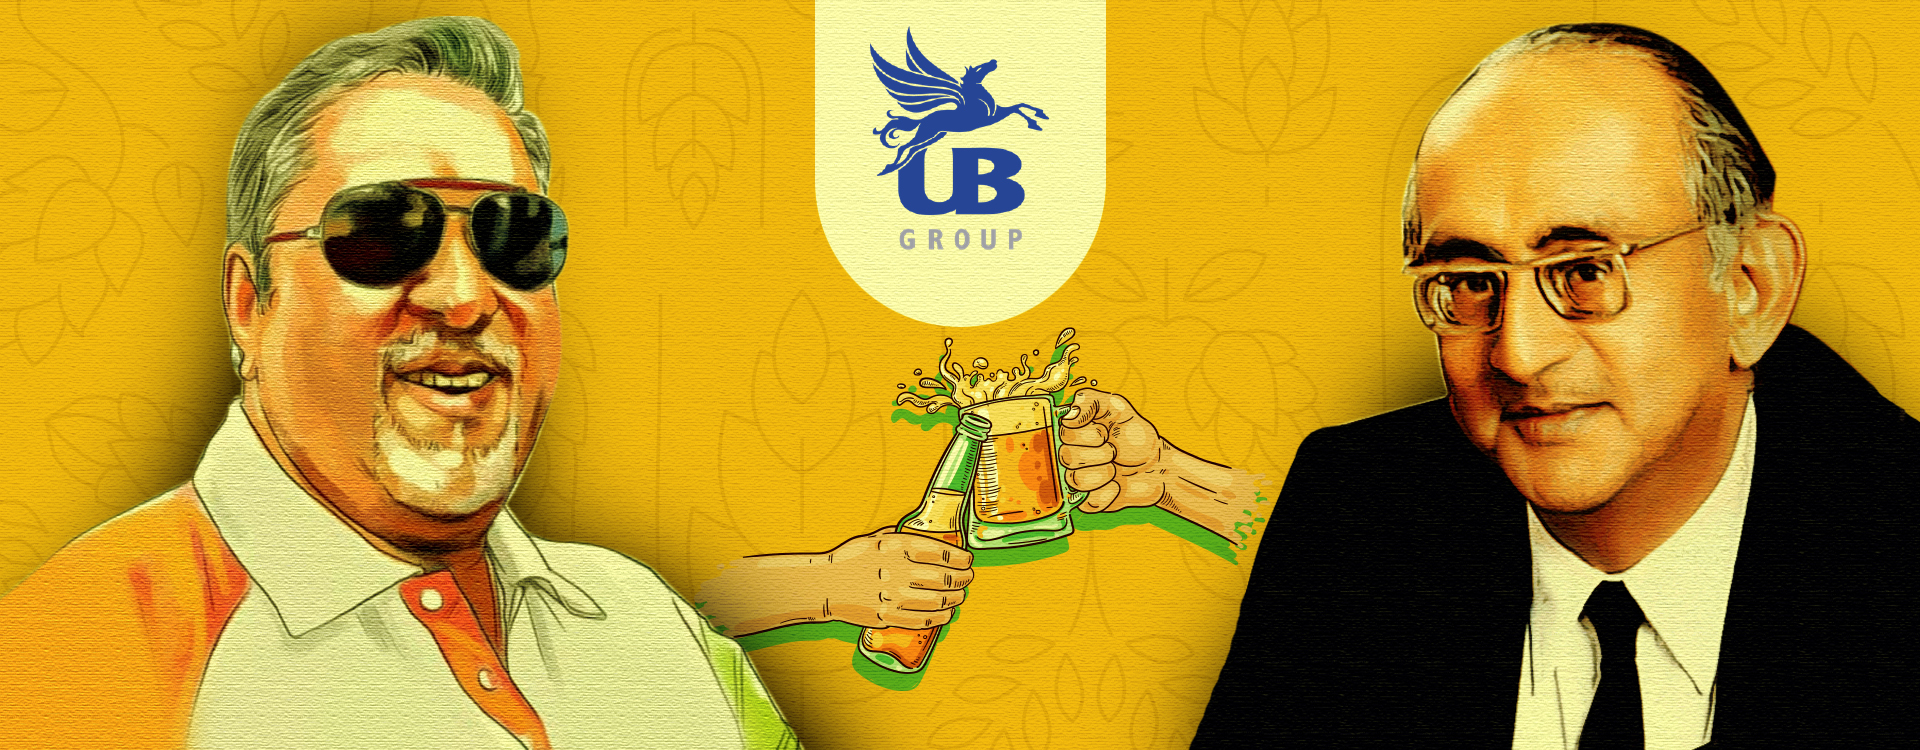 United Breweries is India's Largest Producer of Beer